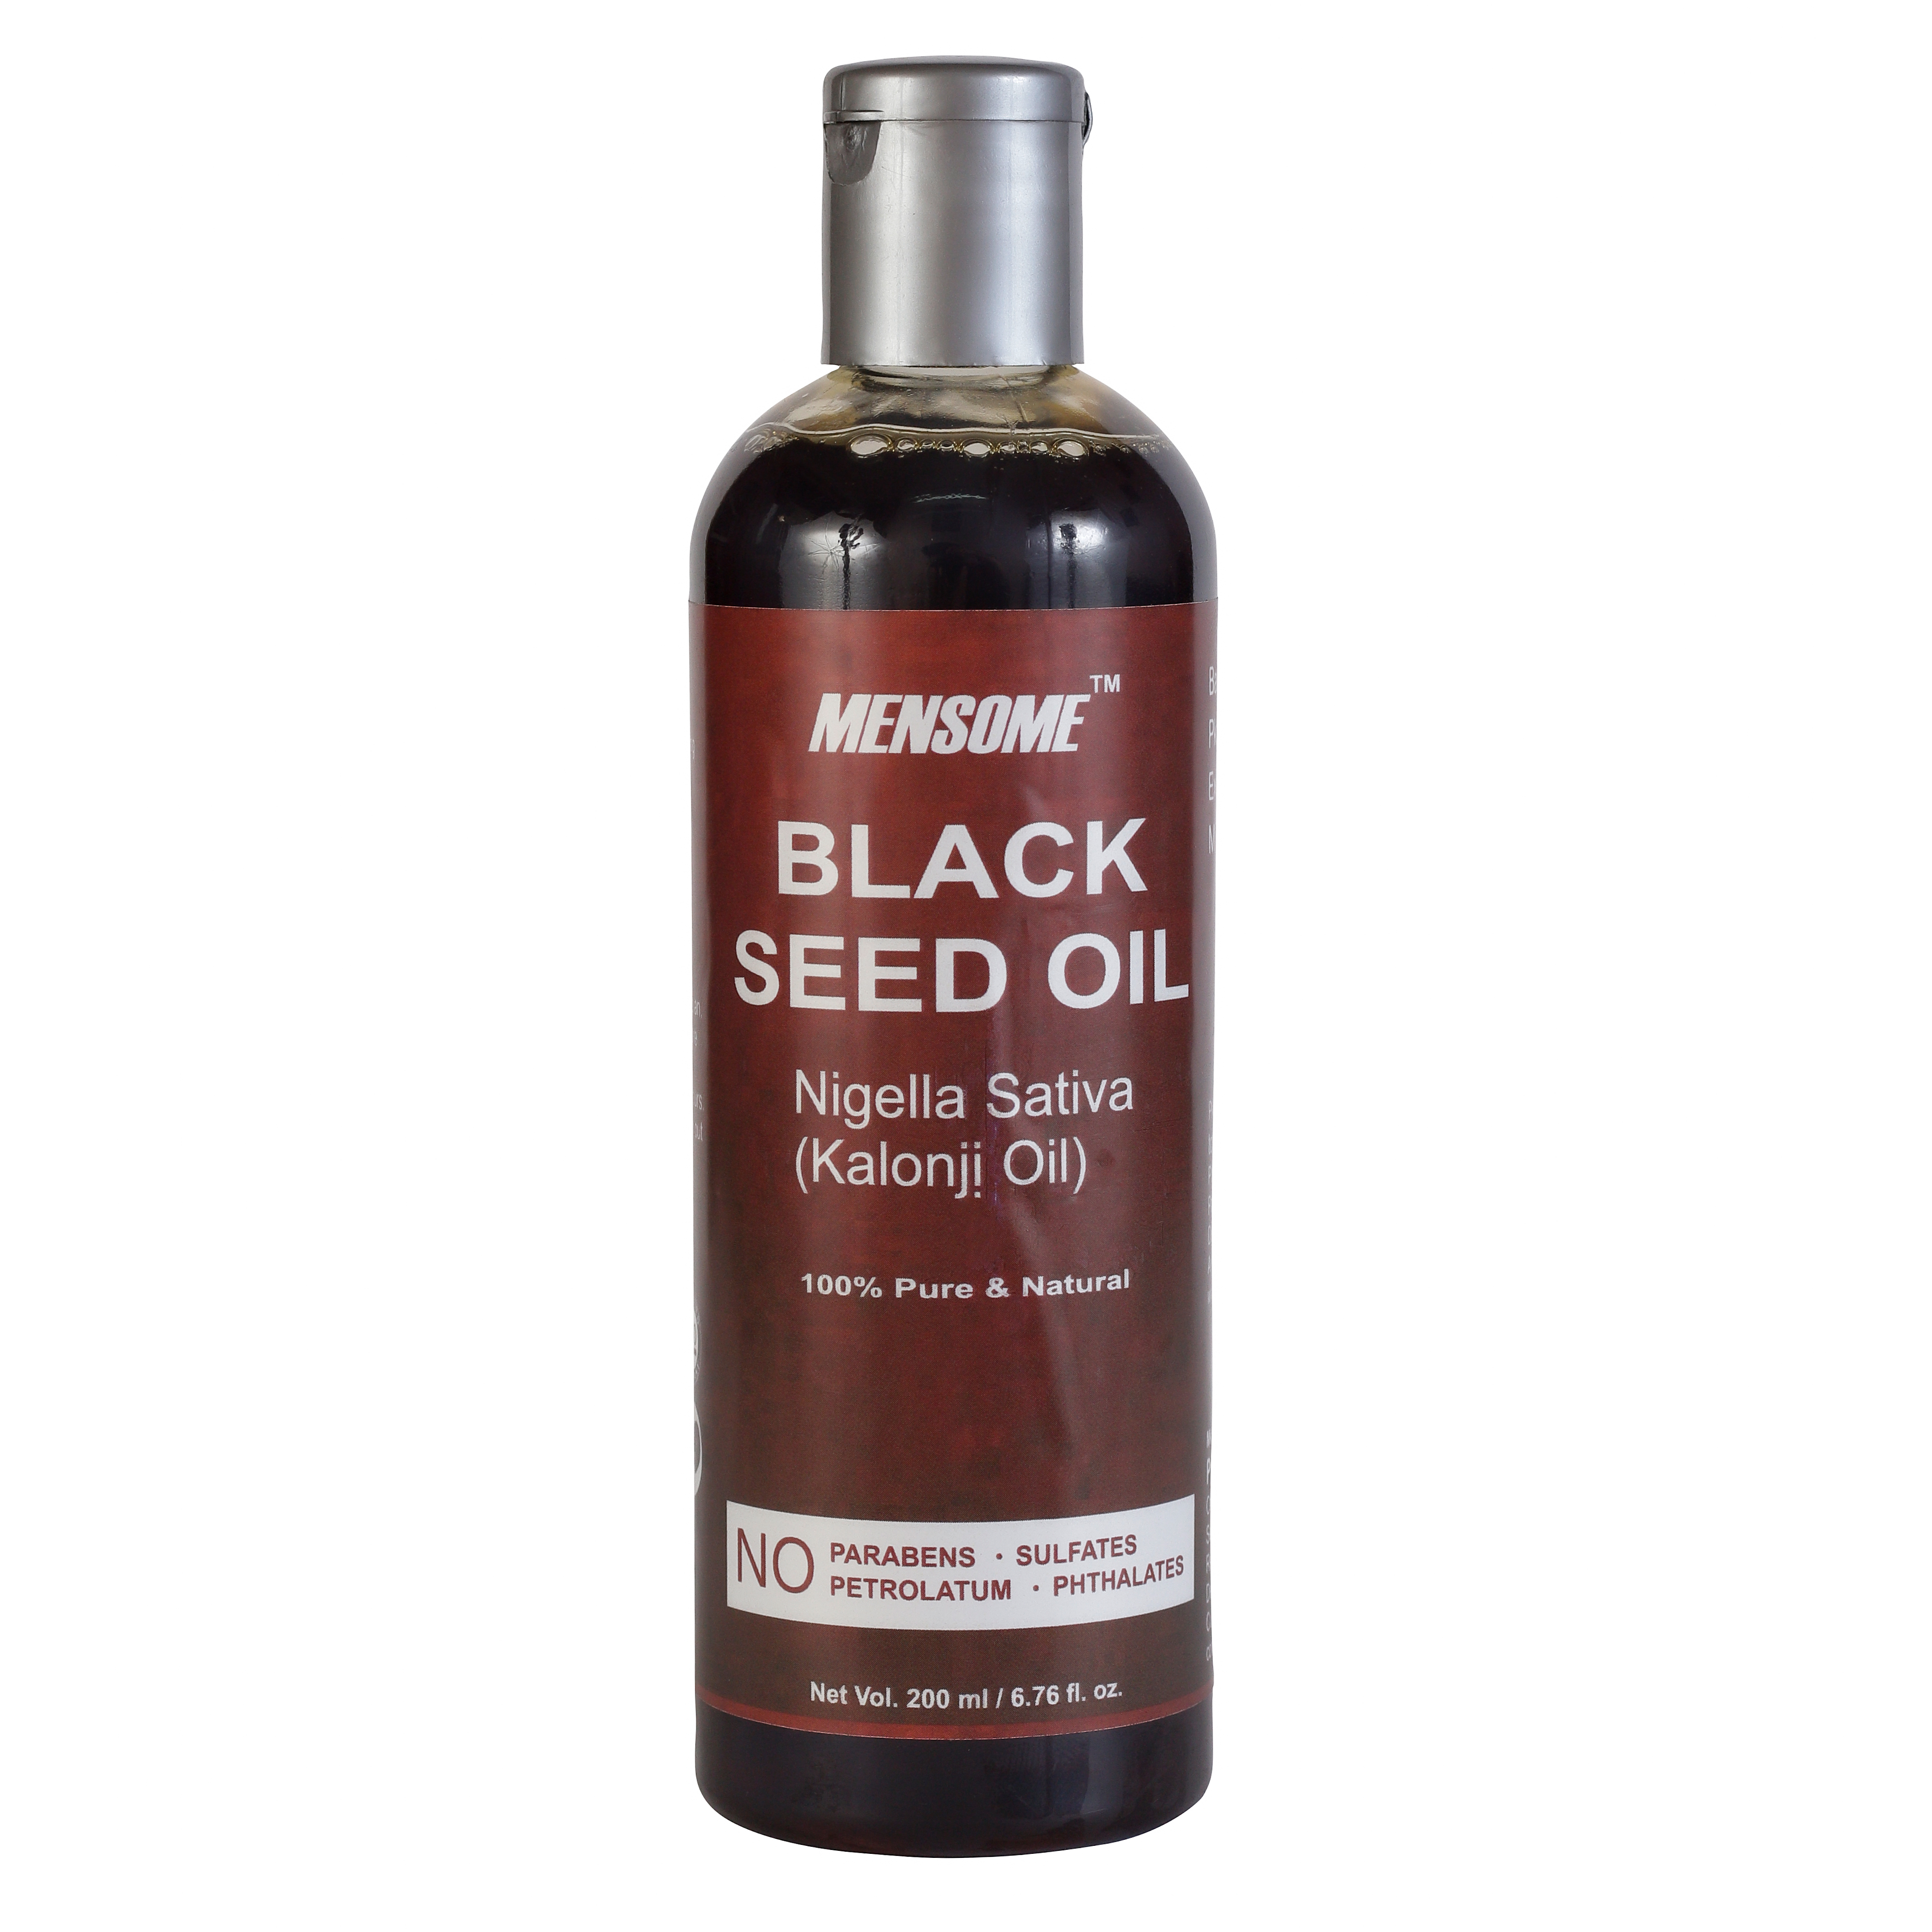 MENSOME Black Seed Oil For Hair Growth And Skin Problems (200 ml)